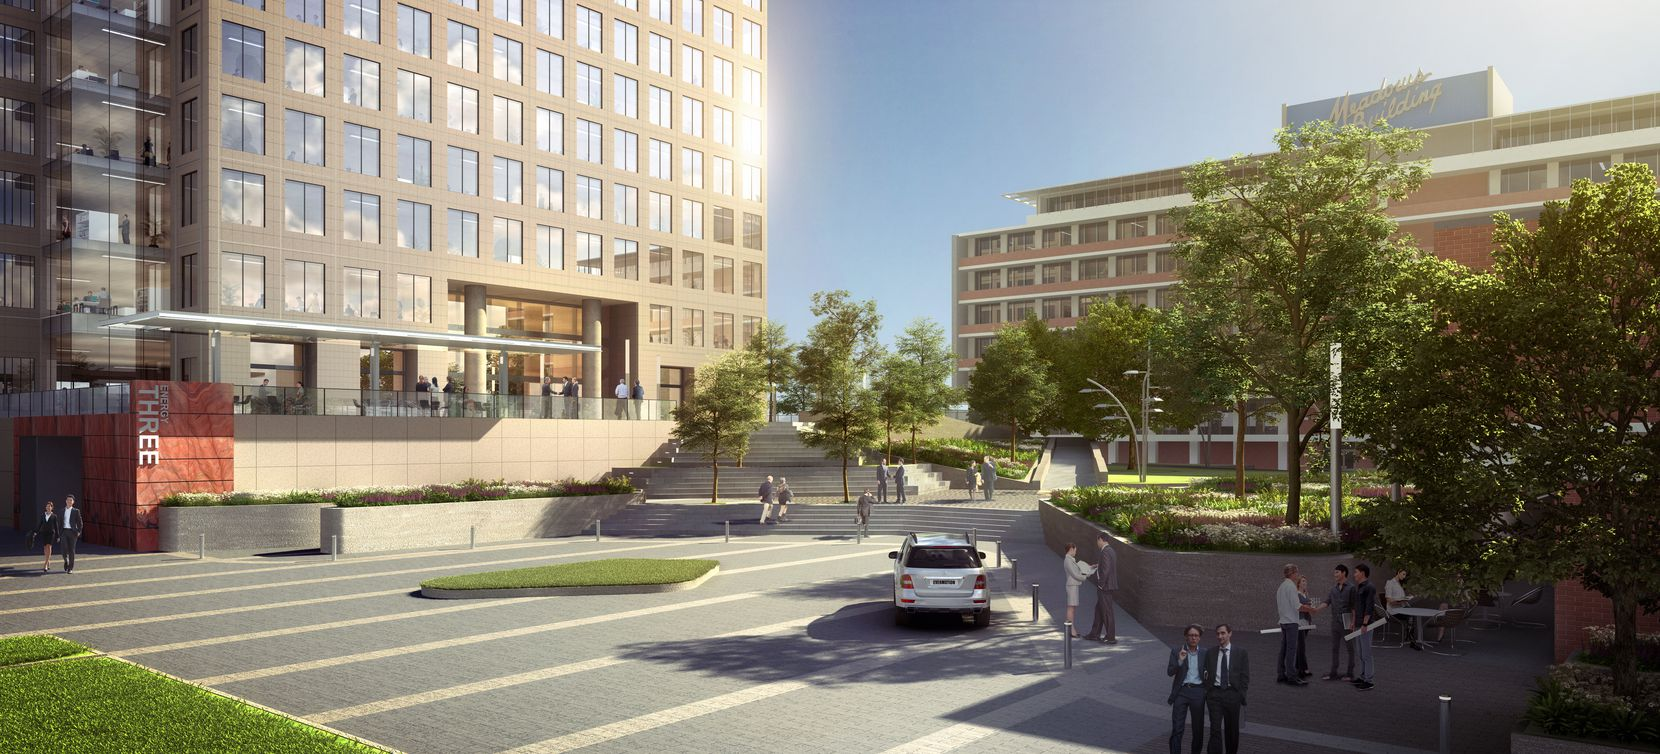 The Energy Square office buildings will get new entrances.